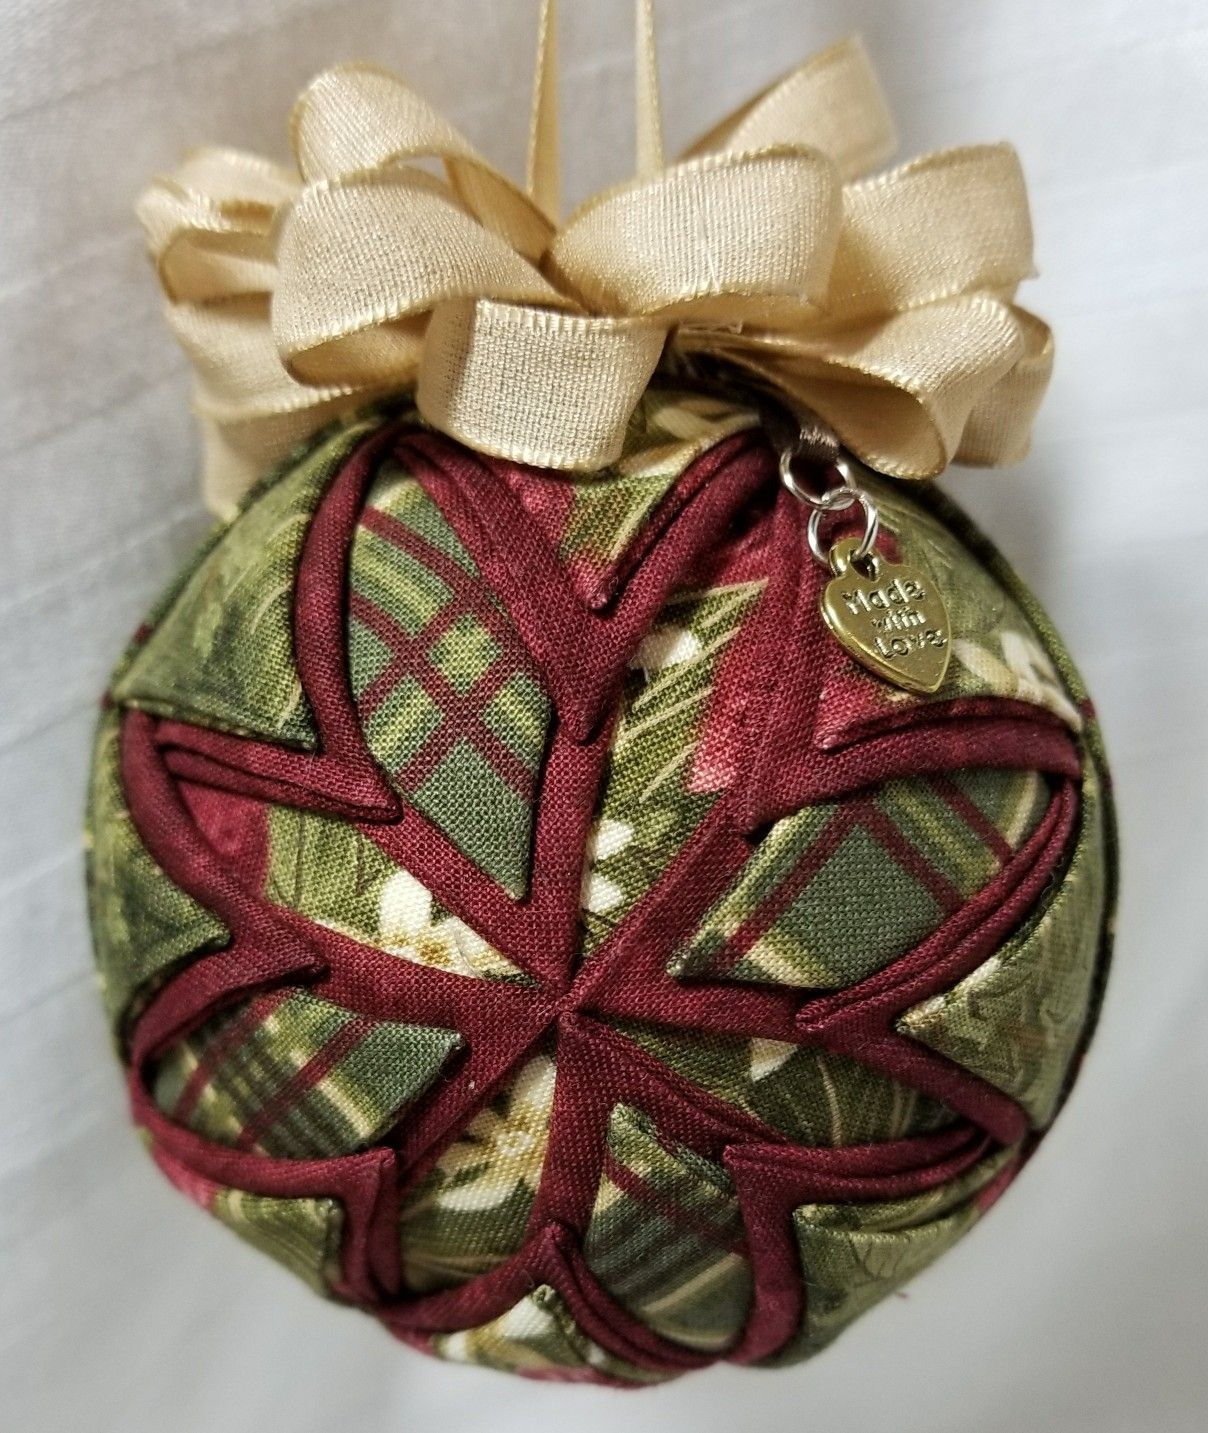 Folded Fabric Ornament Ball Made By Kathy Hatch Fabric Ornaments Sewn Christmas Ornaments Folded Fabric Ornaments